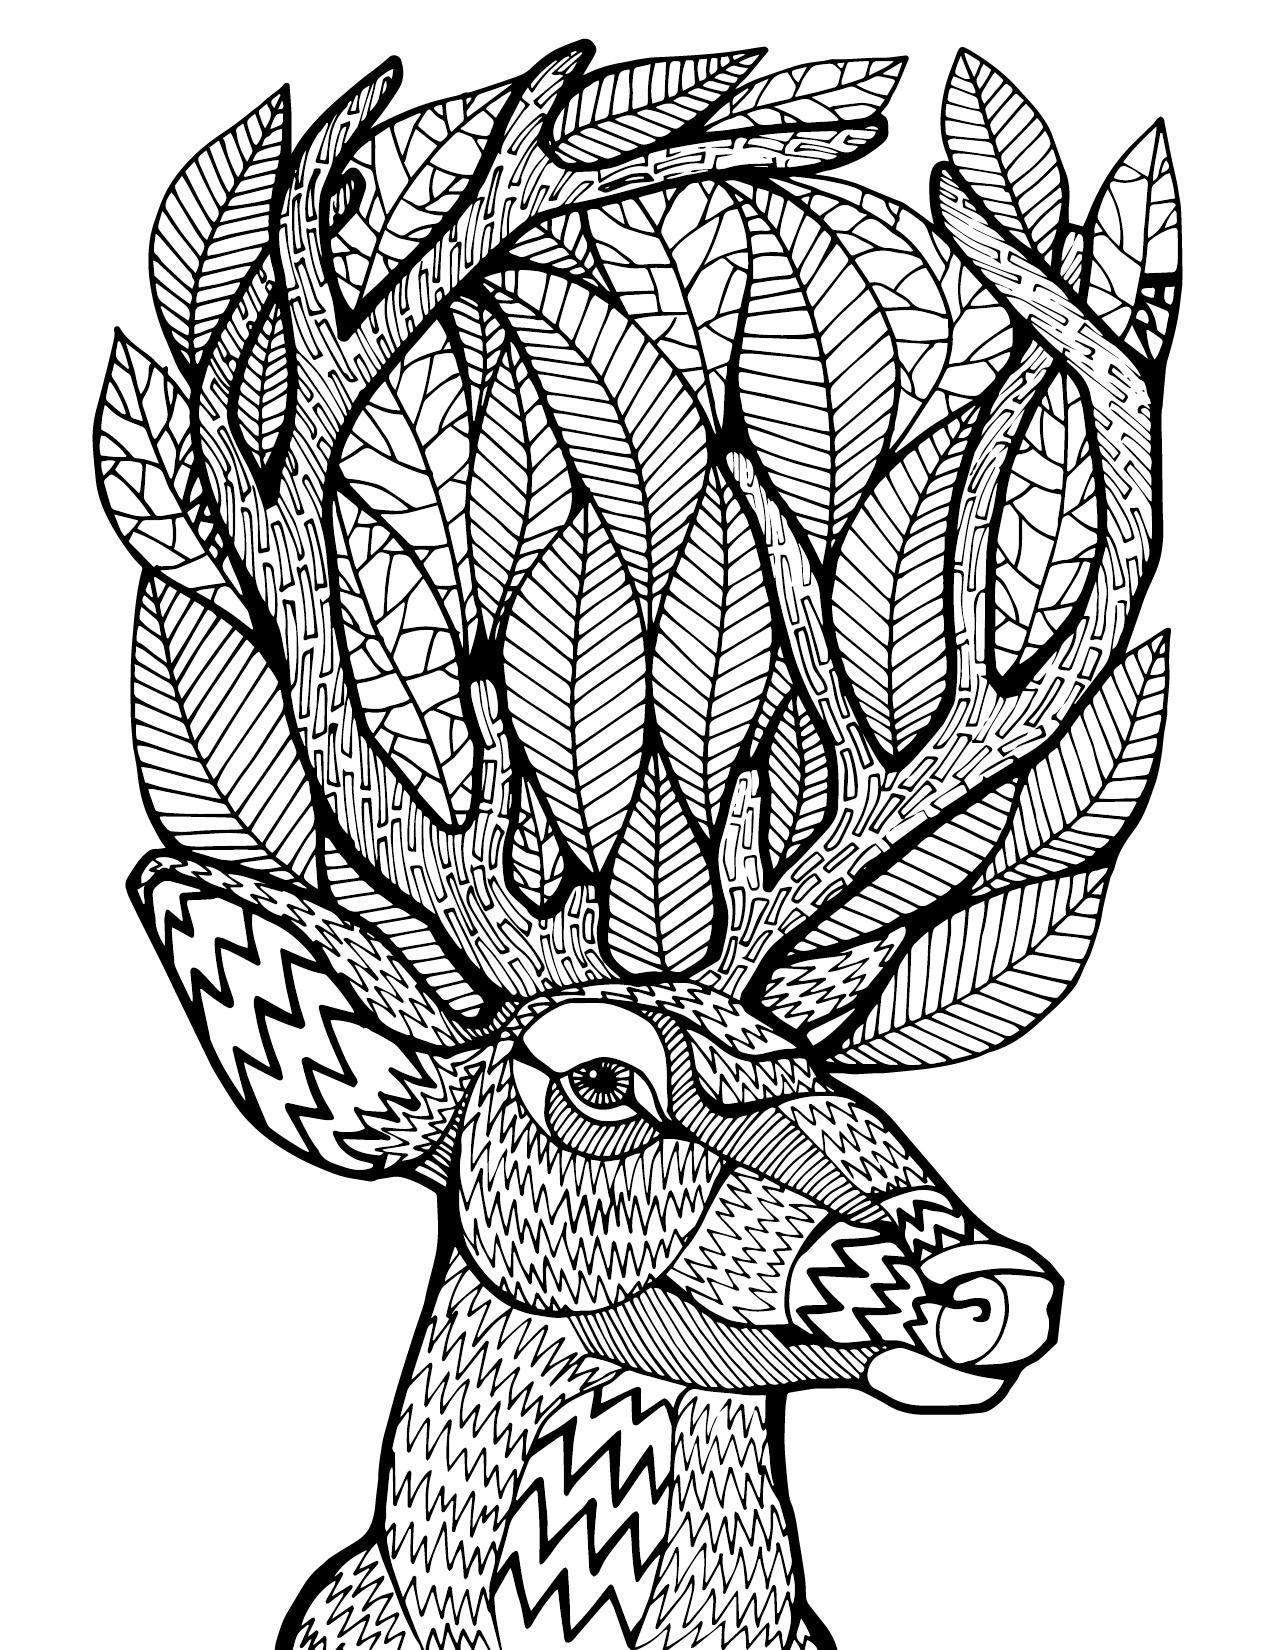 27 Tumblr Coloring Pages Pictures